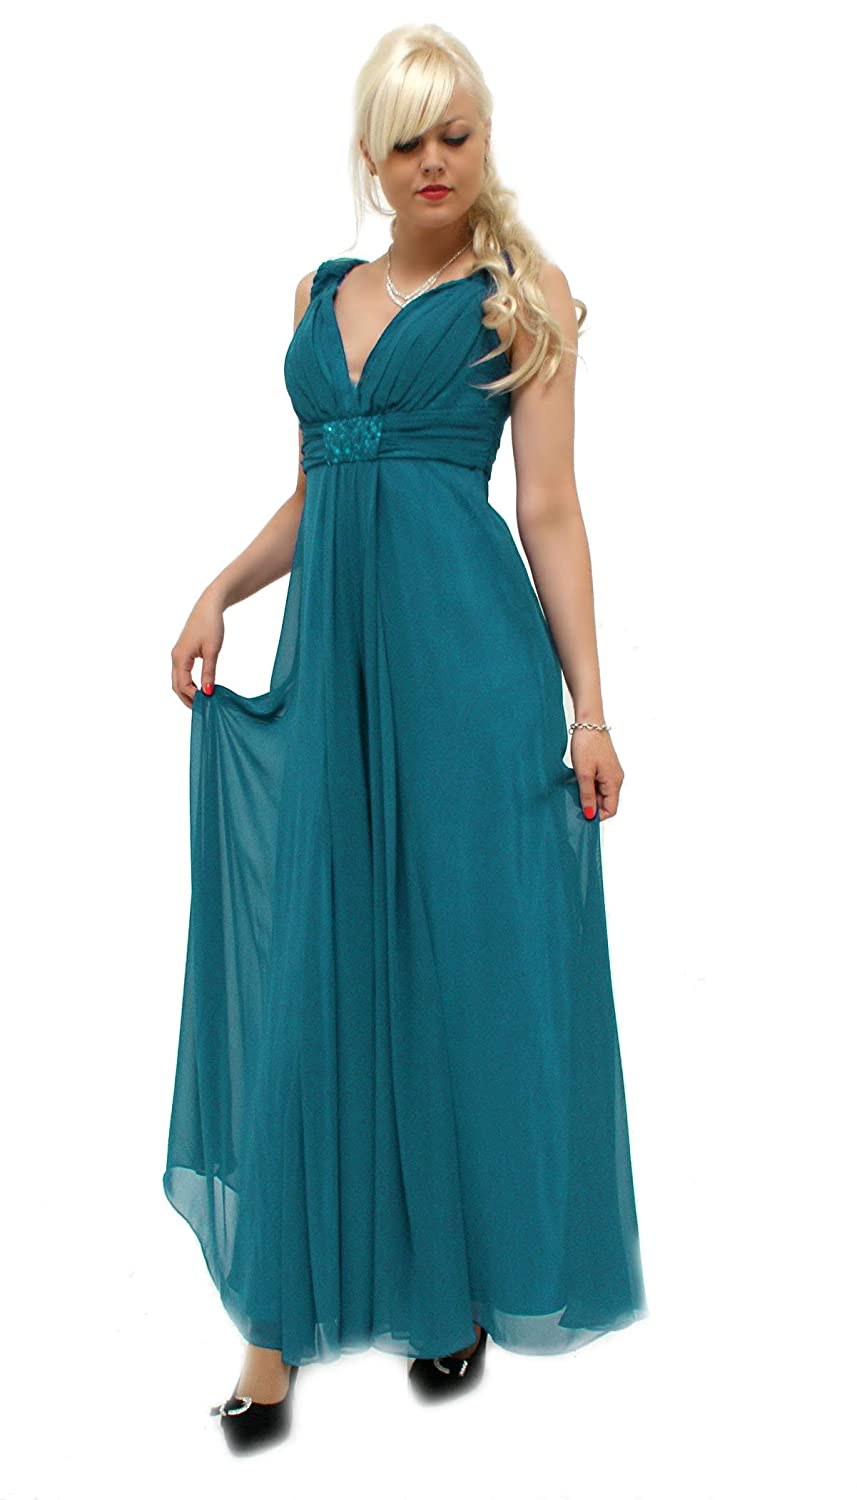 Classy evening dress with v-neck (R827) immediately available